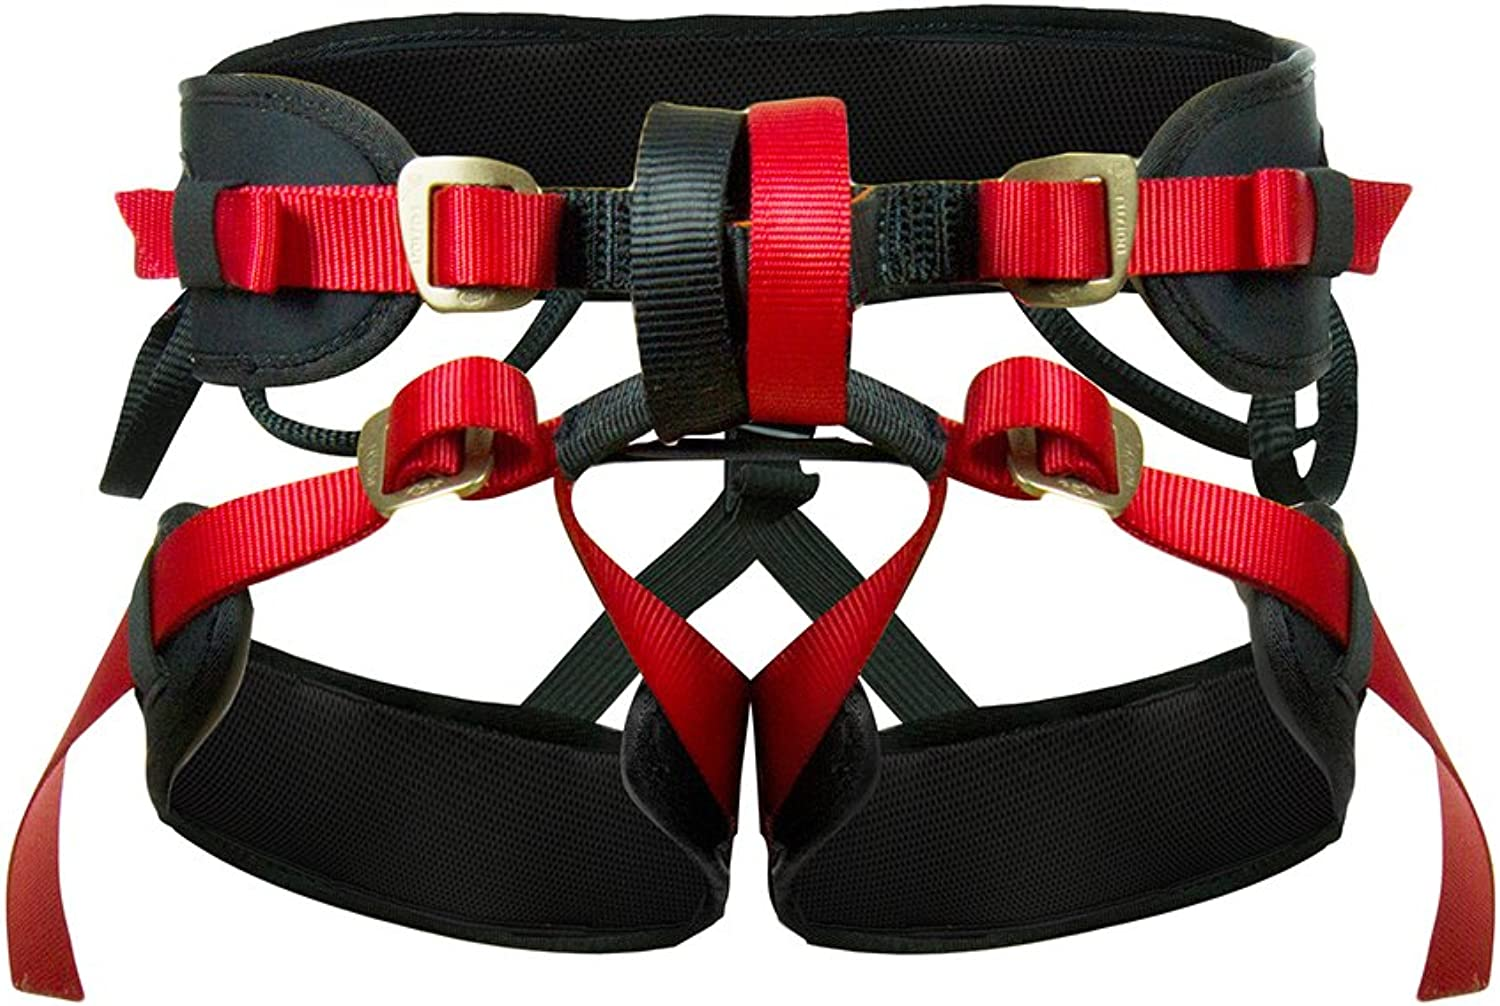 Fusion Climb Theo Pro Padded Rappeling Adjustable Harness 23kN MXL Red